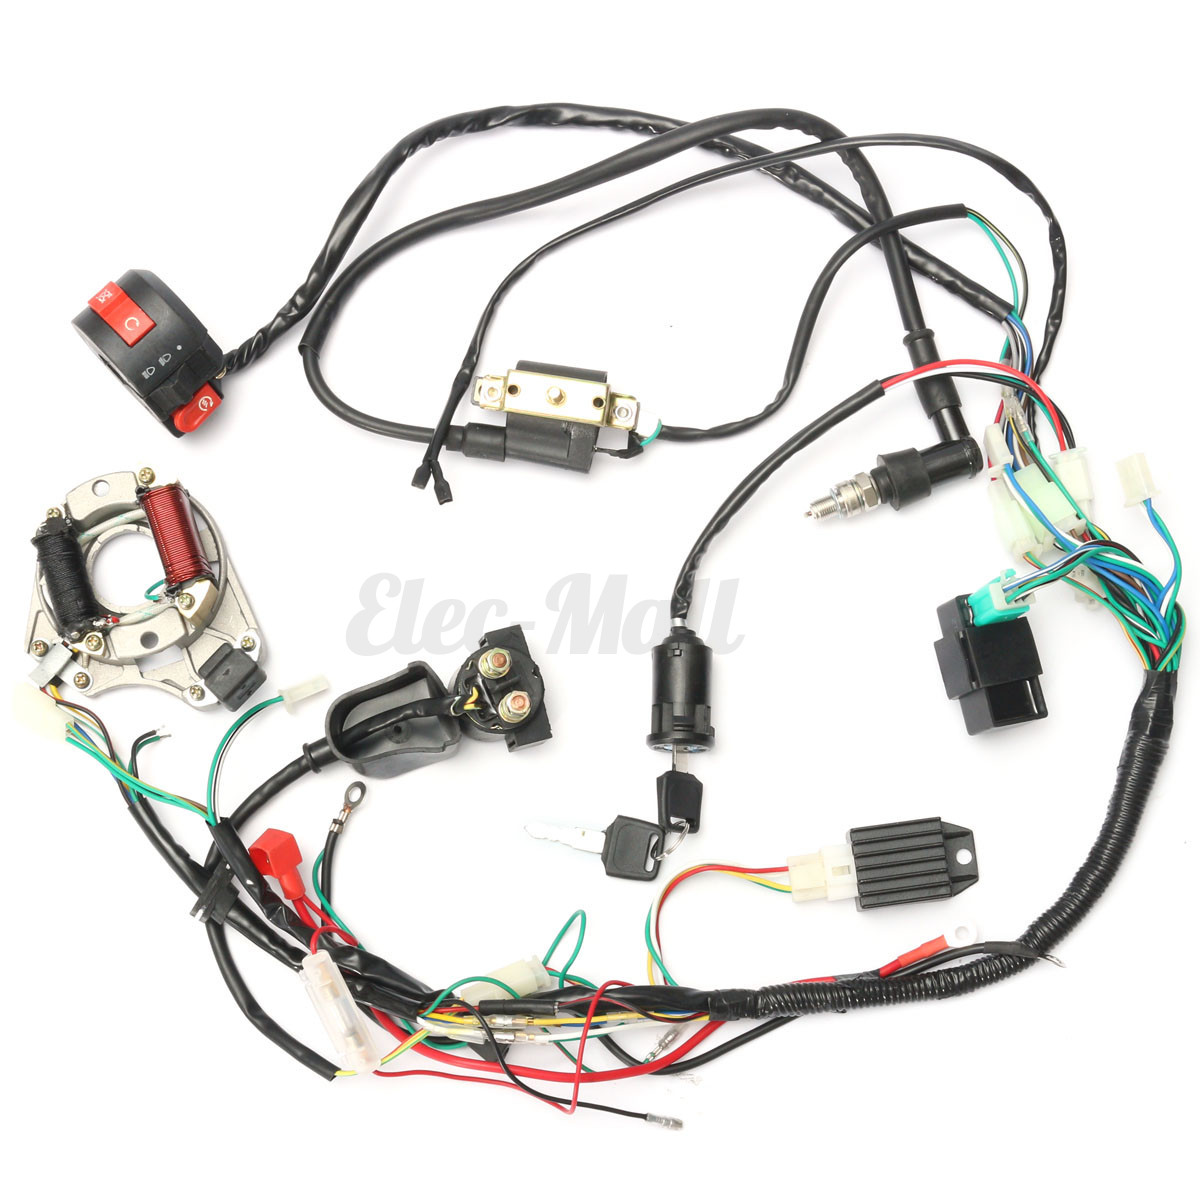 hight resolution of chinese atv wiring harness wiring diagrams konsult loncin 50cc quad wiring diagram 50cc 125cc cdi wire